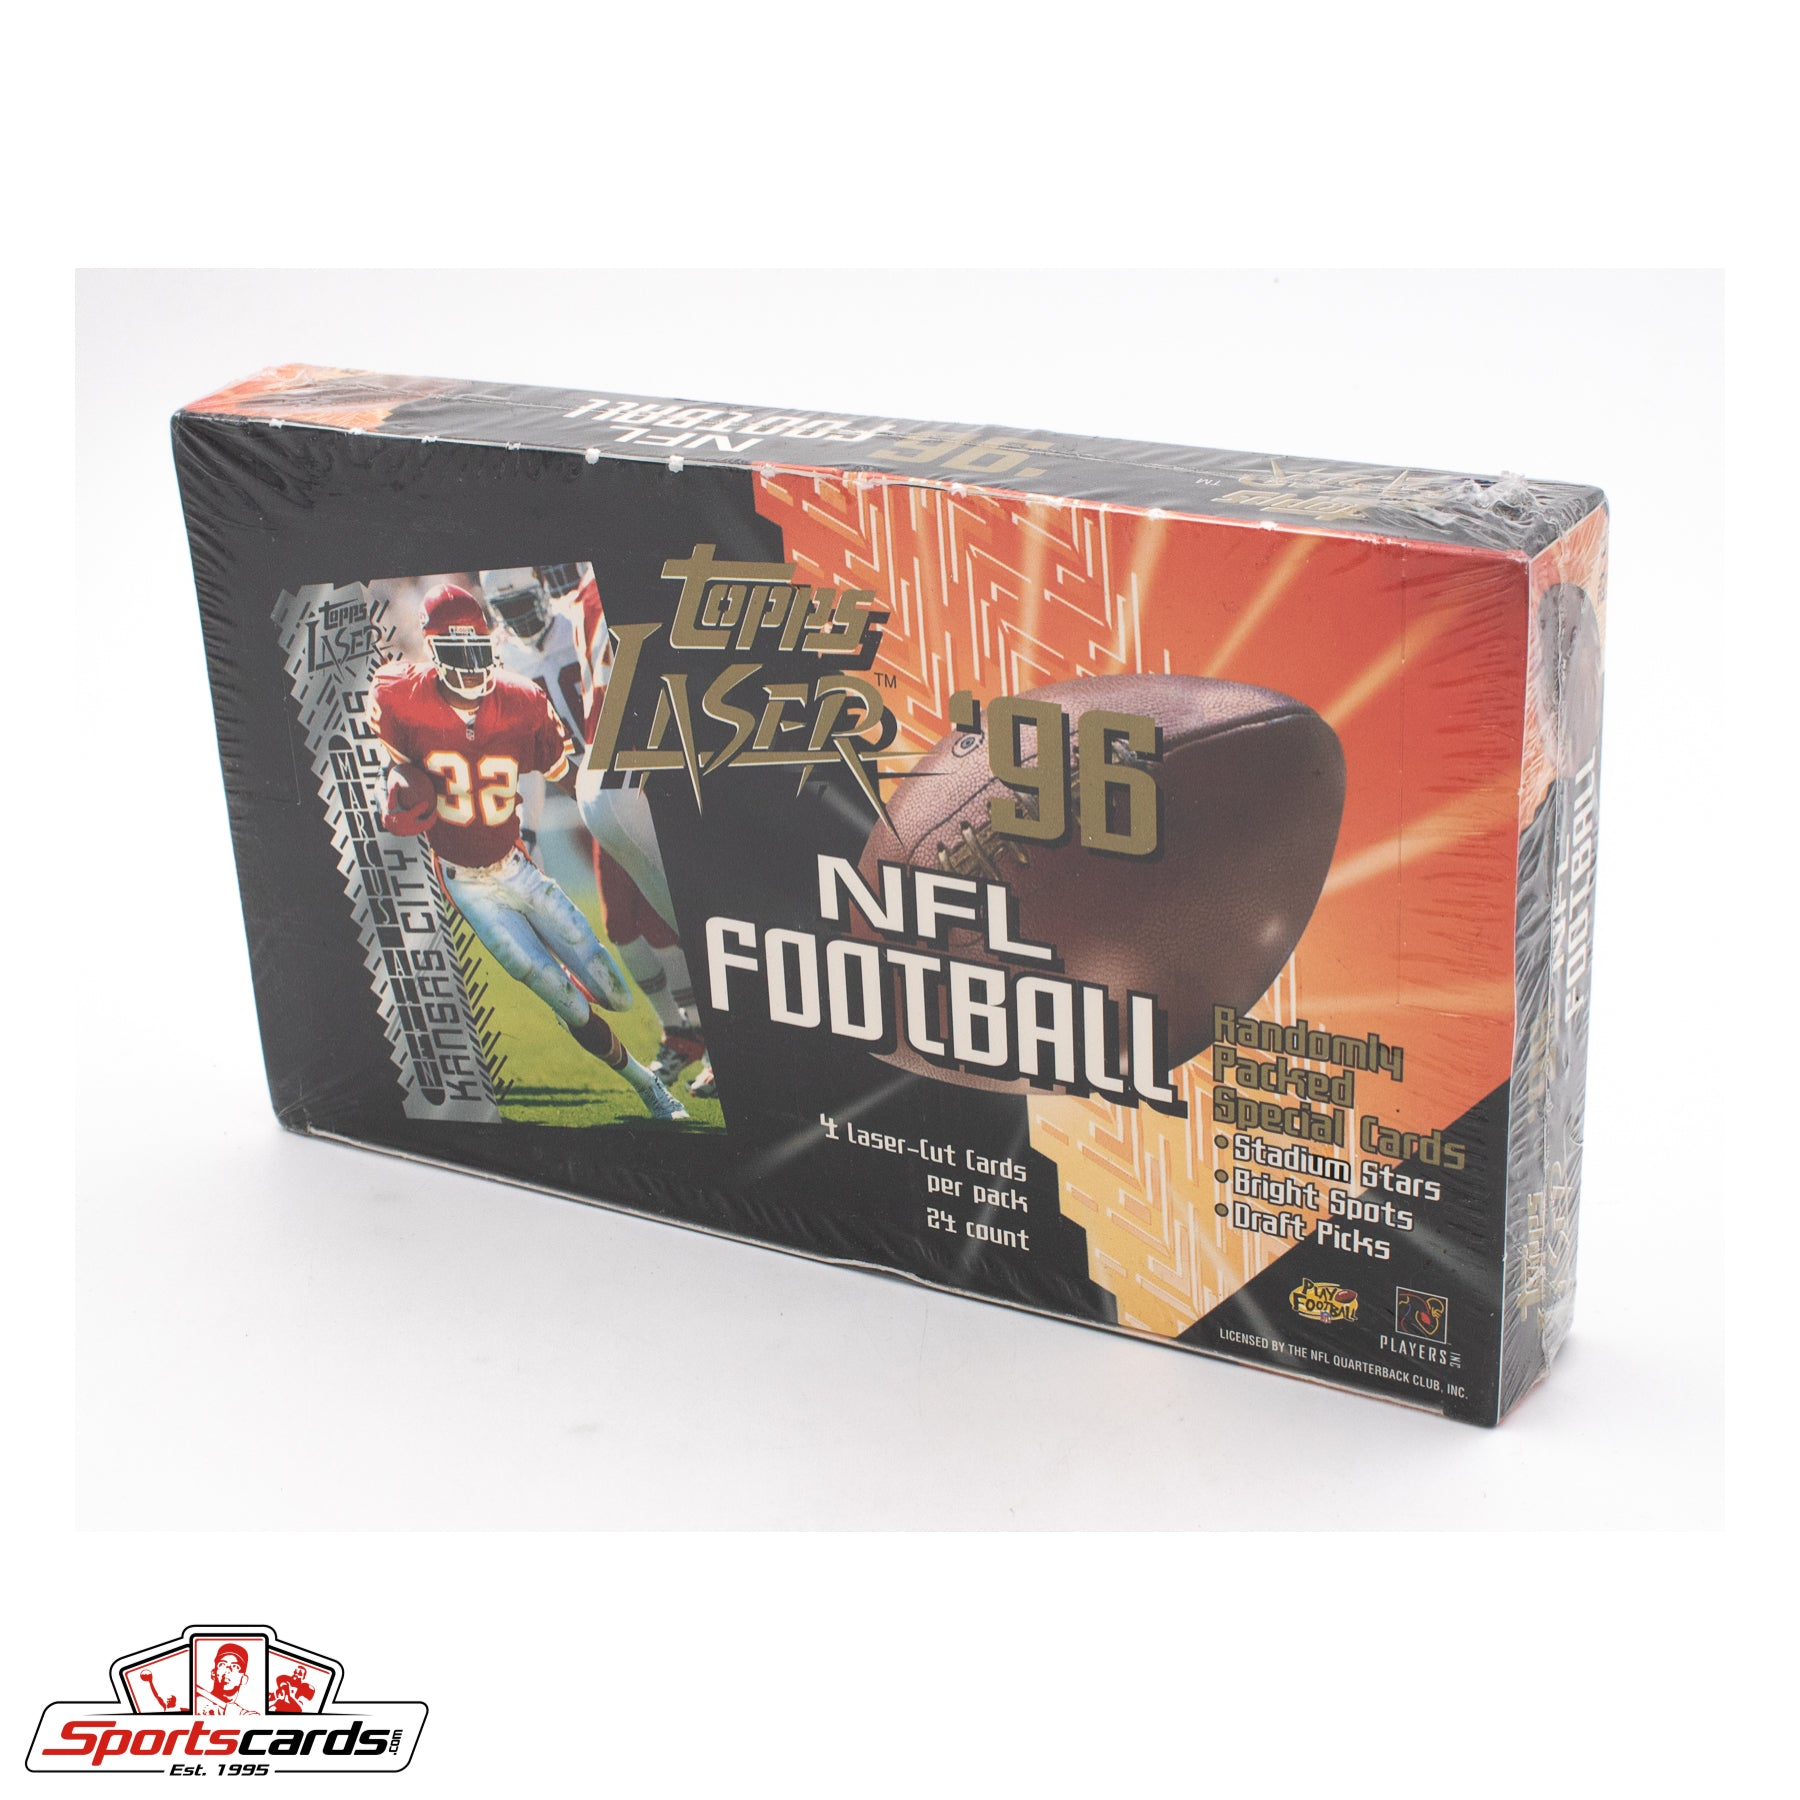 1996 Topps Laser NFL Football Factory Sealed Box